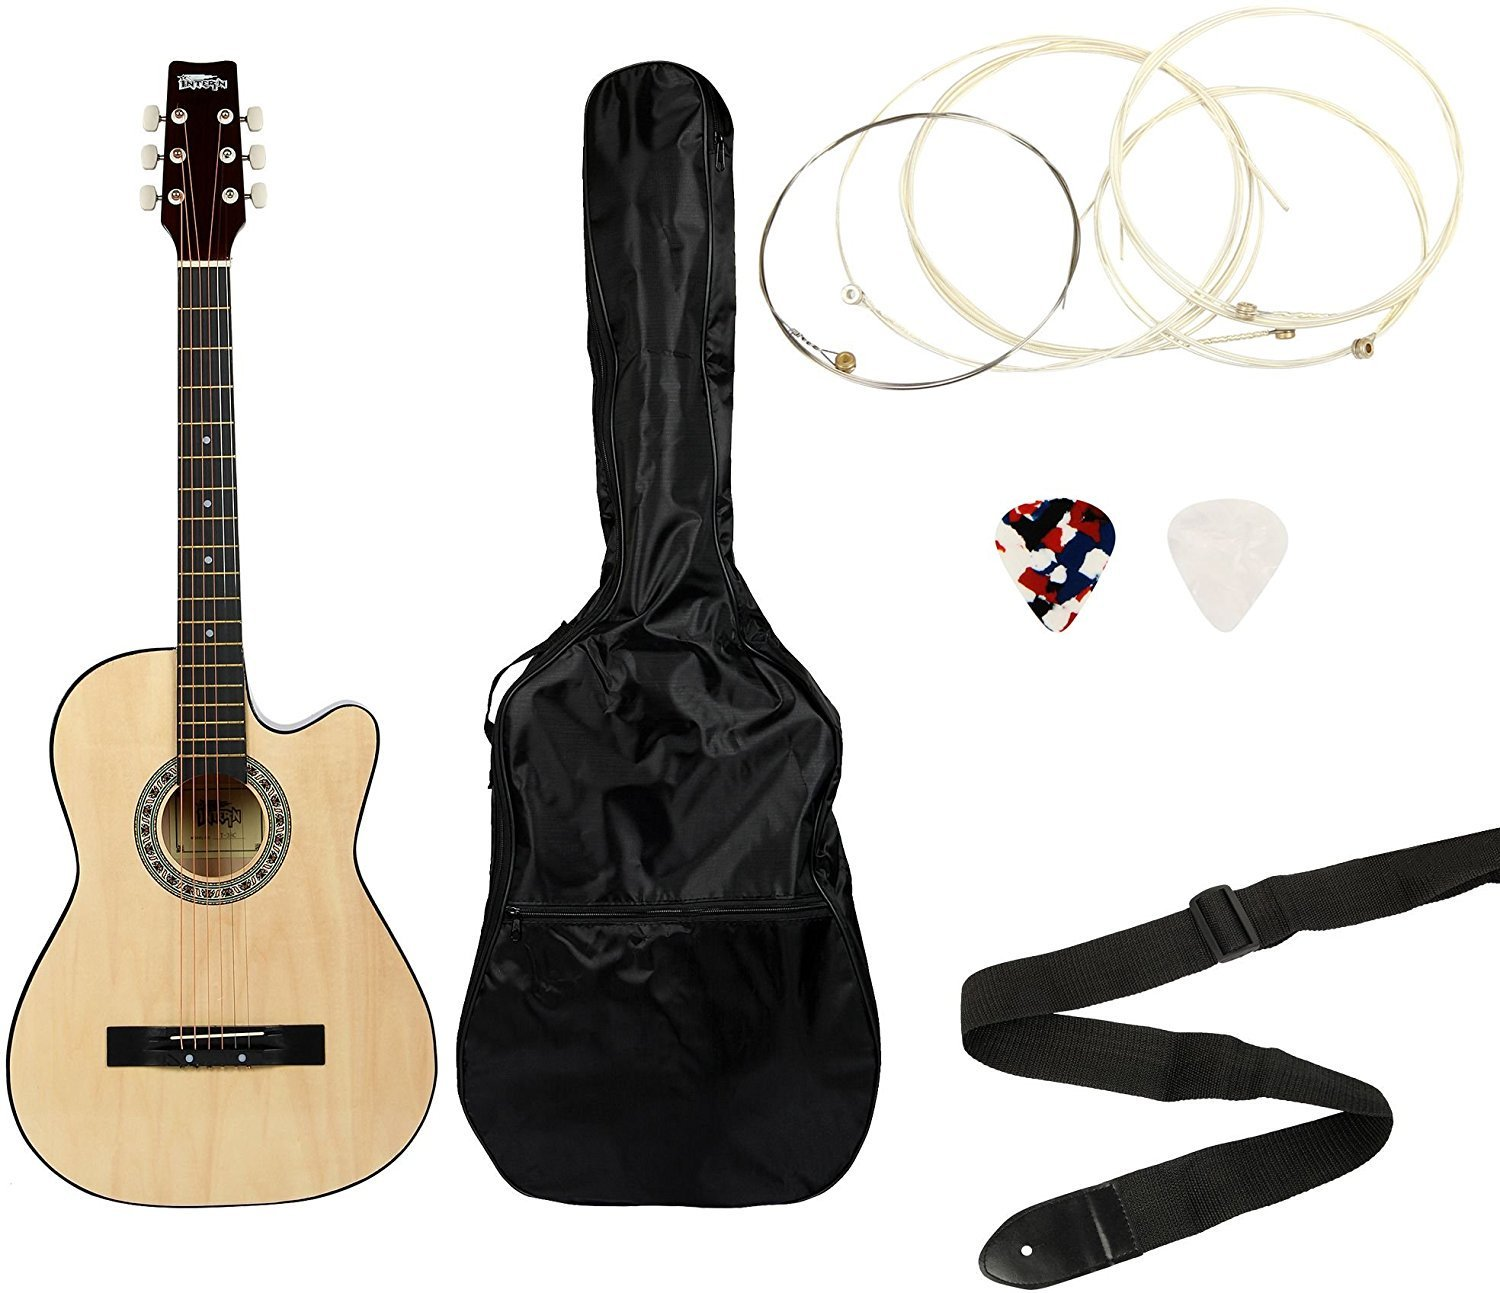 Get Intern INT-38C Acoustic Guitar Kit, Natural at Rs 1990 | Amazon Offer